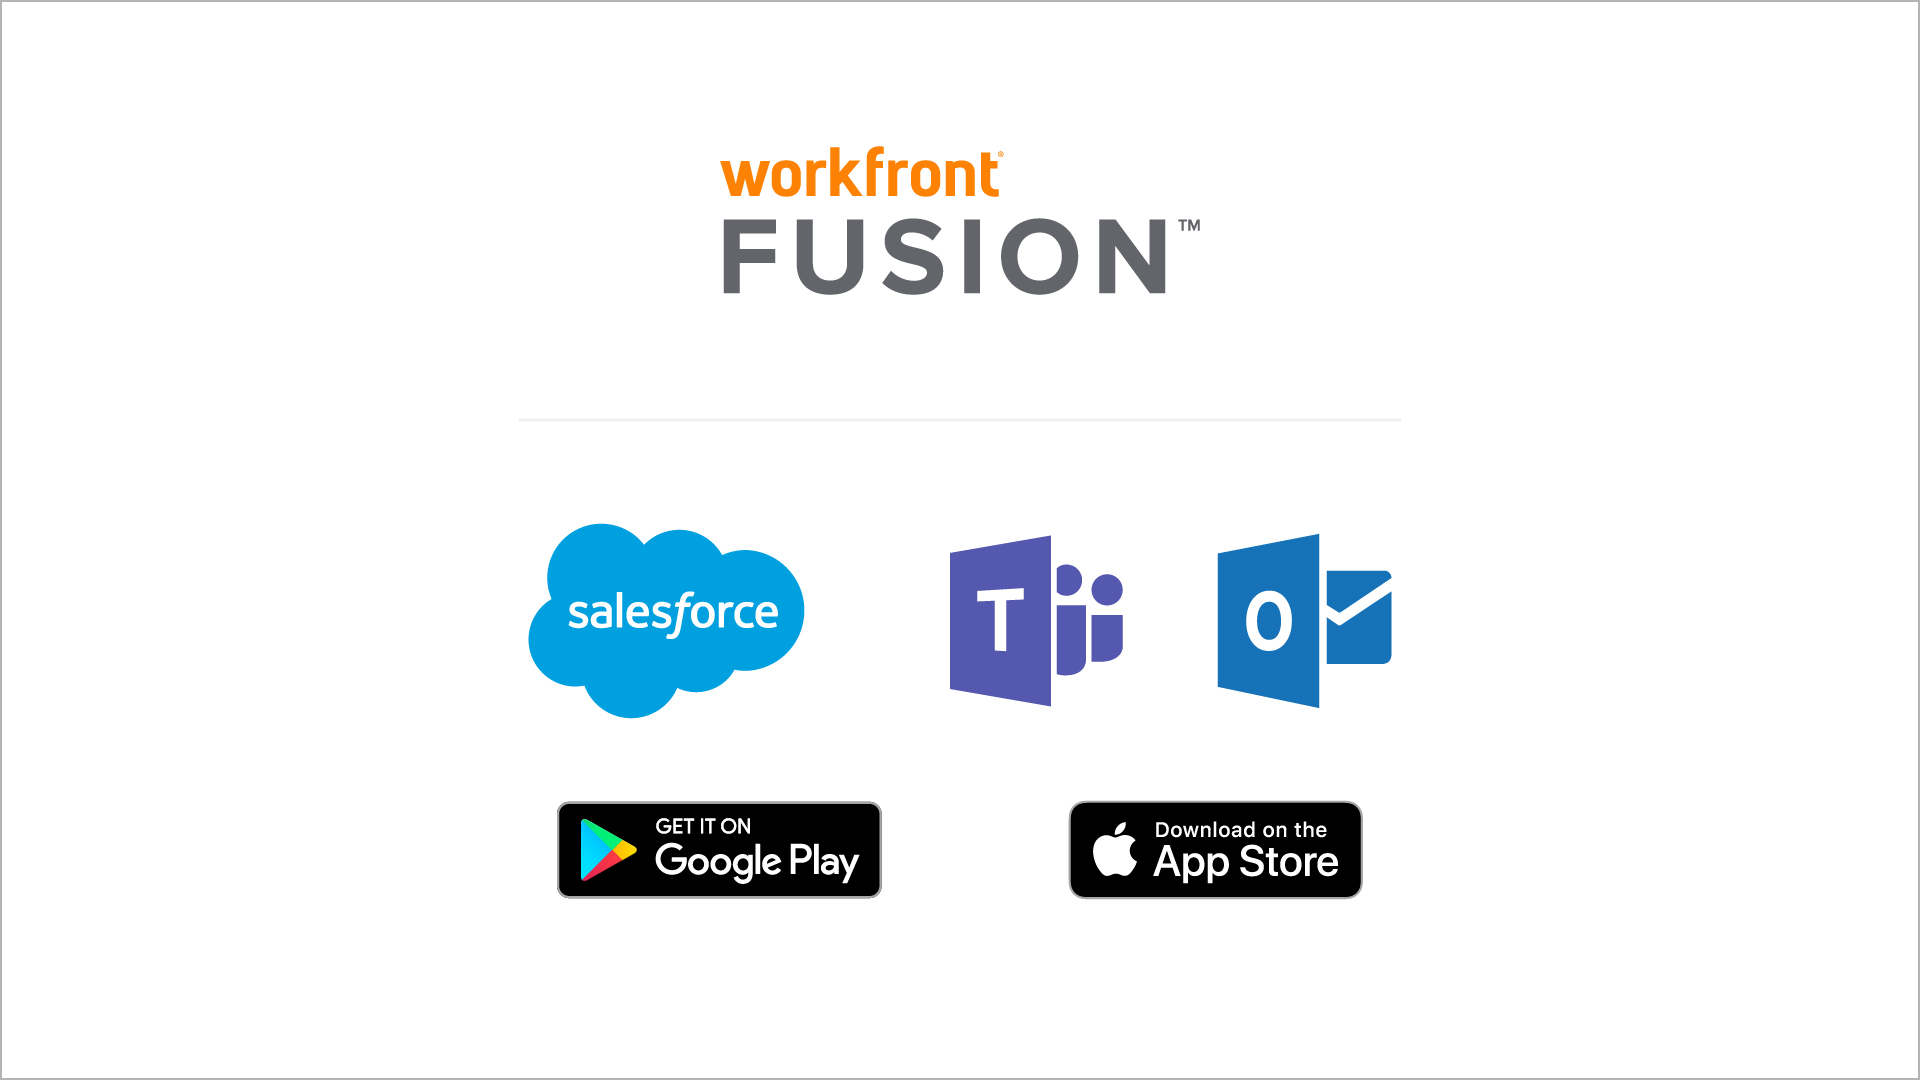 MS Teams, Outlook, Salesforce, Google play and Apple store logos